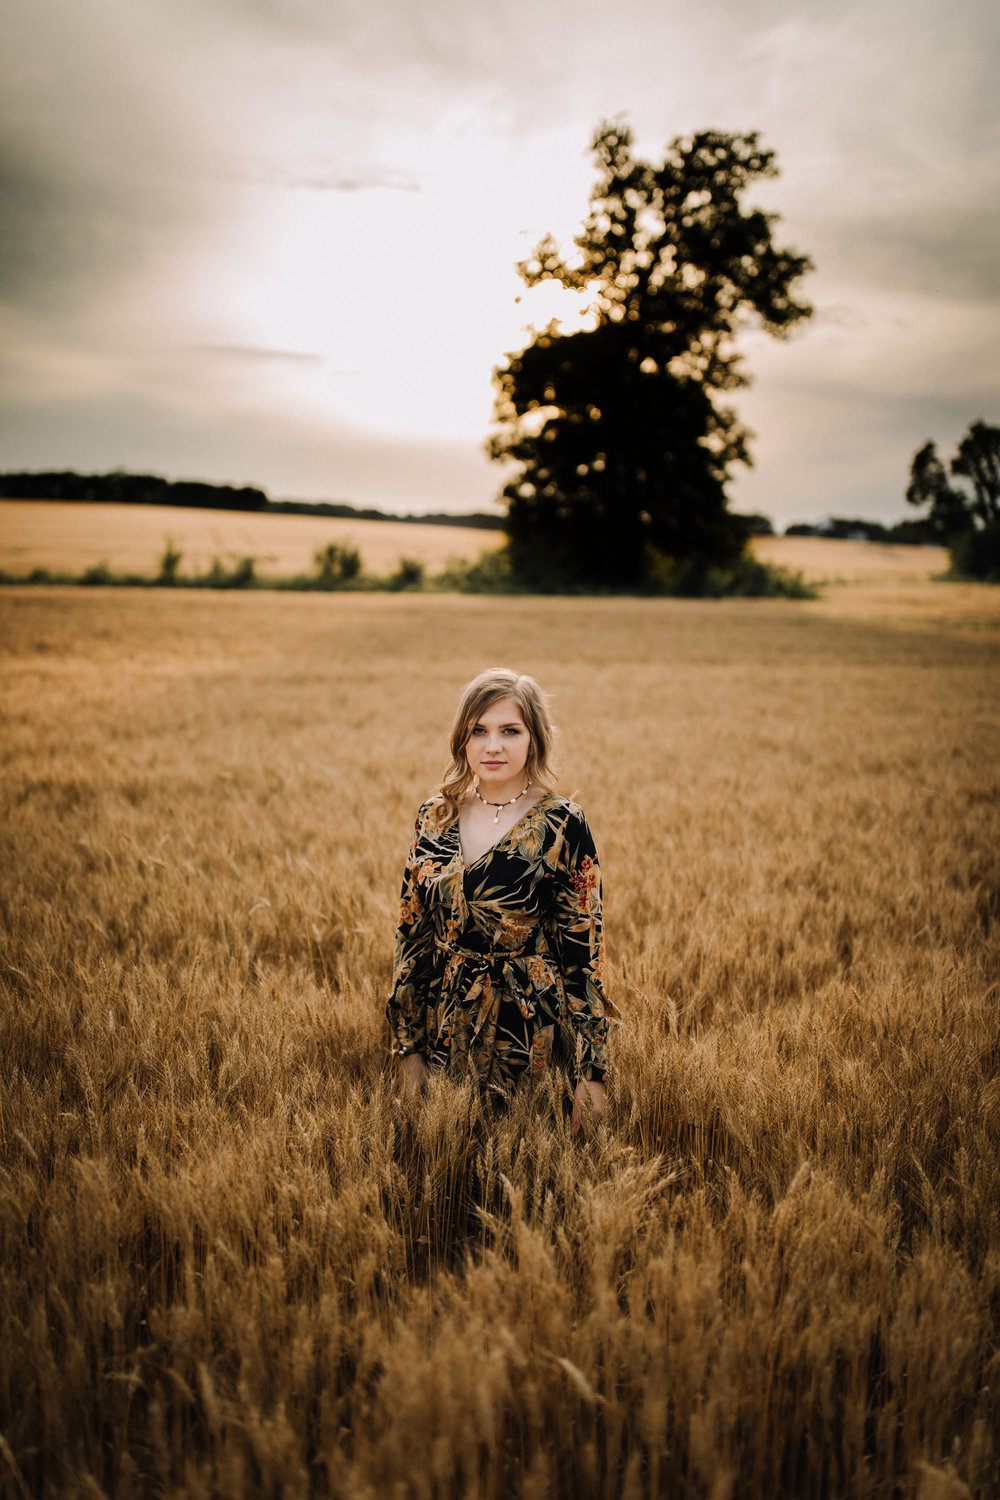 billie-shaye style photography - www.billieshayestyle.com - class of 2019 - senior portrait experience - country farm creek crop land - nashville tennessee-4159.jpg